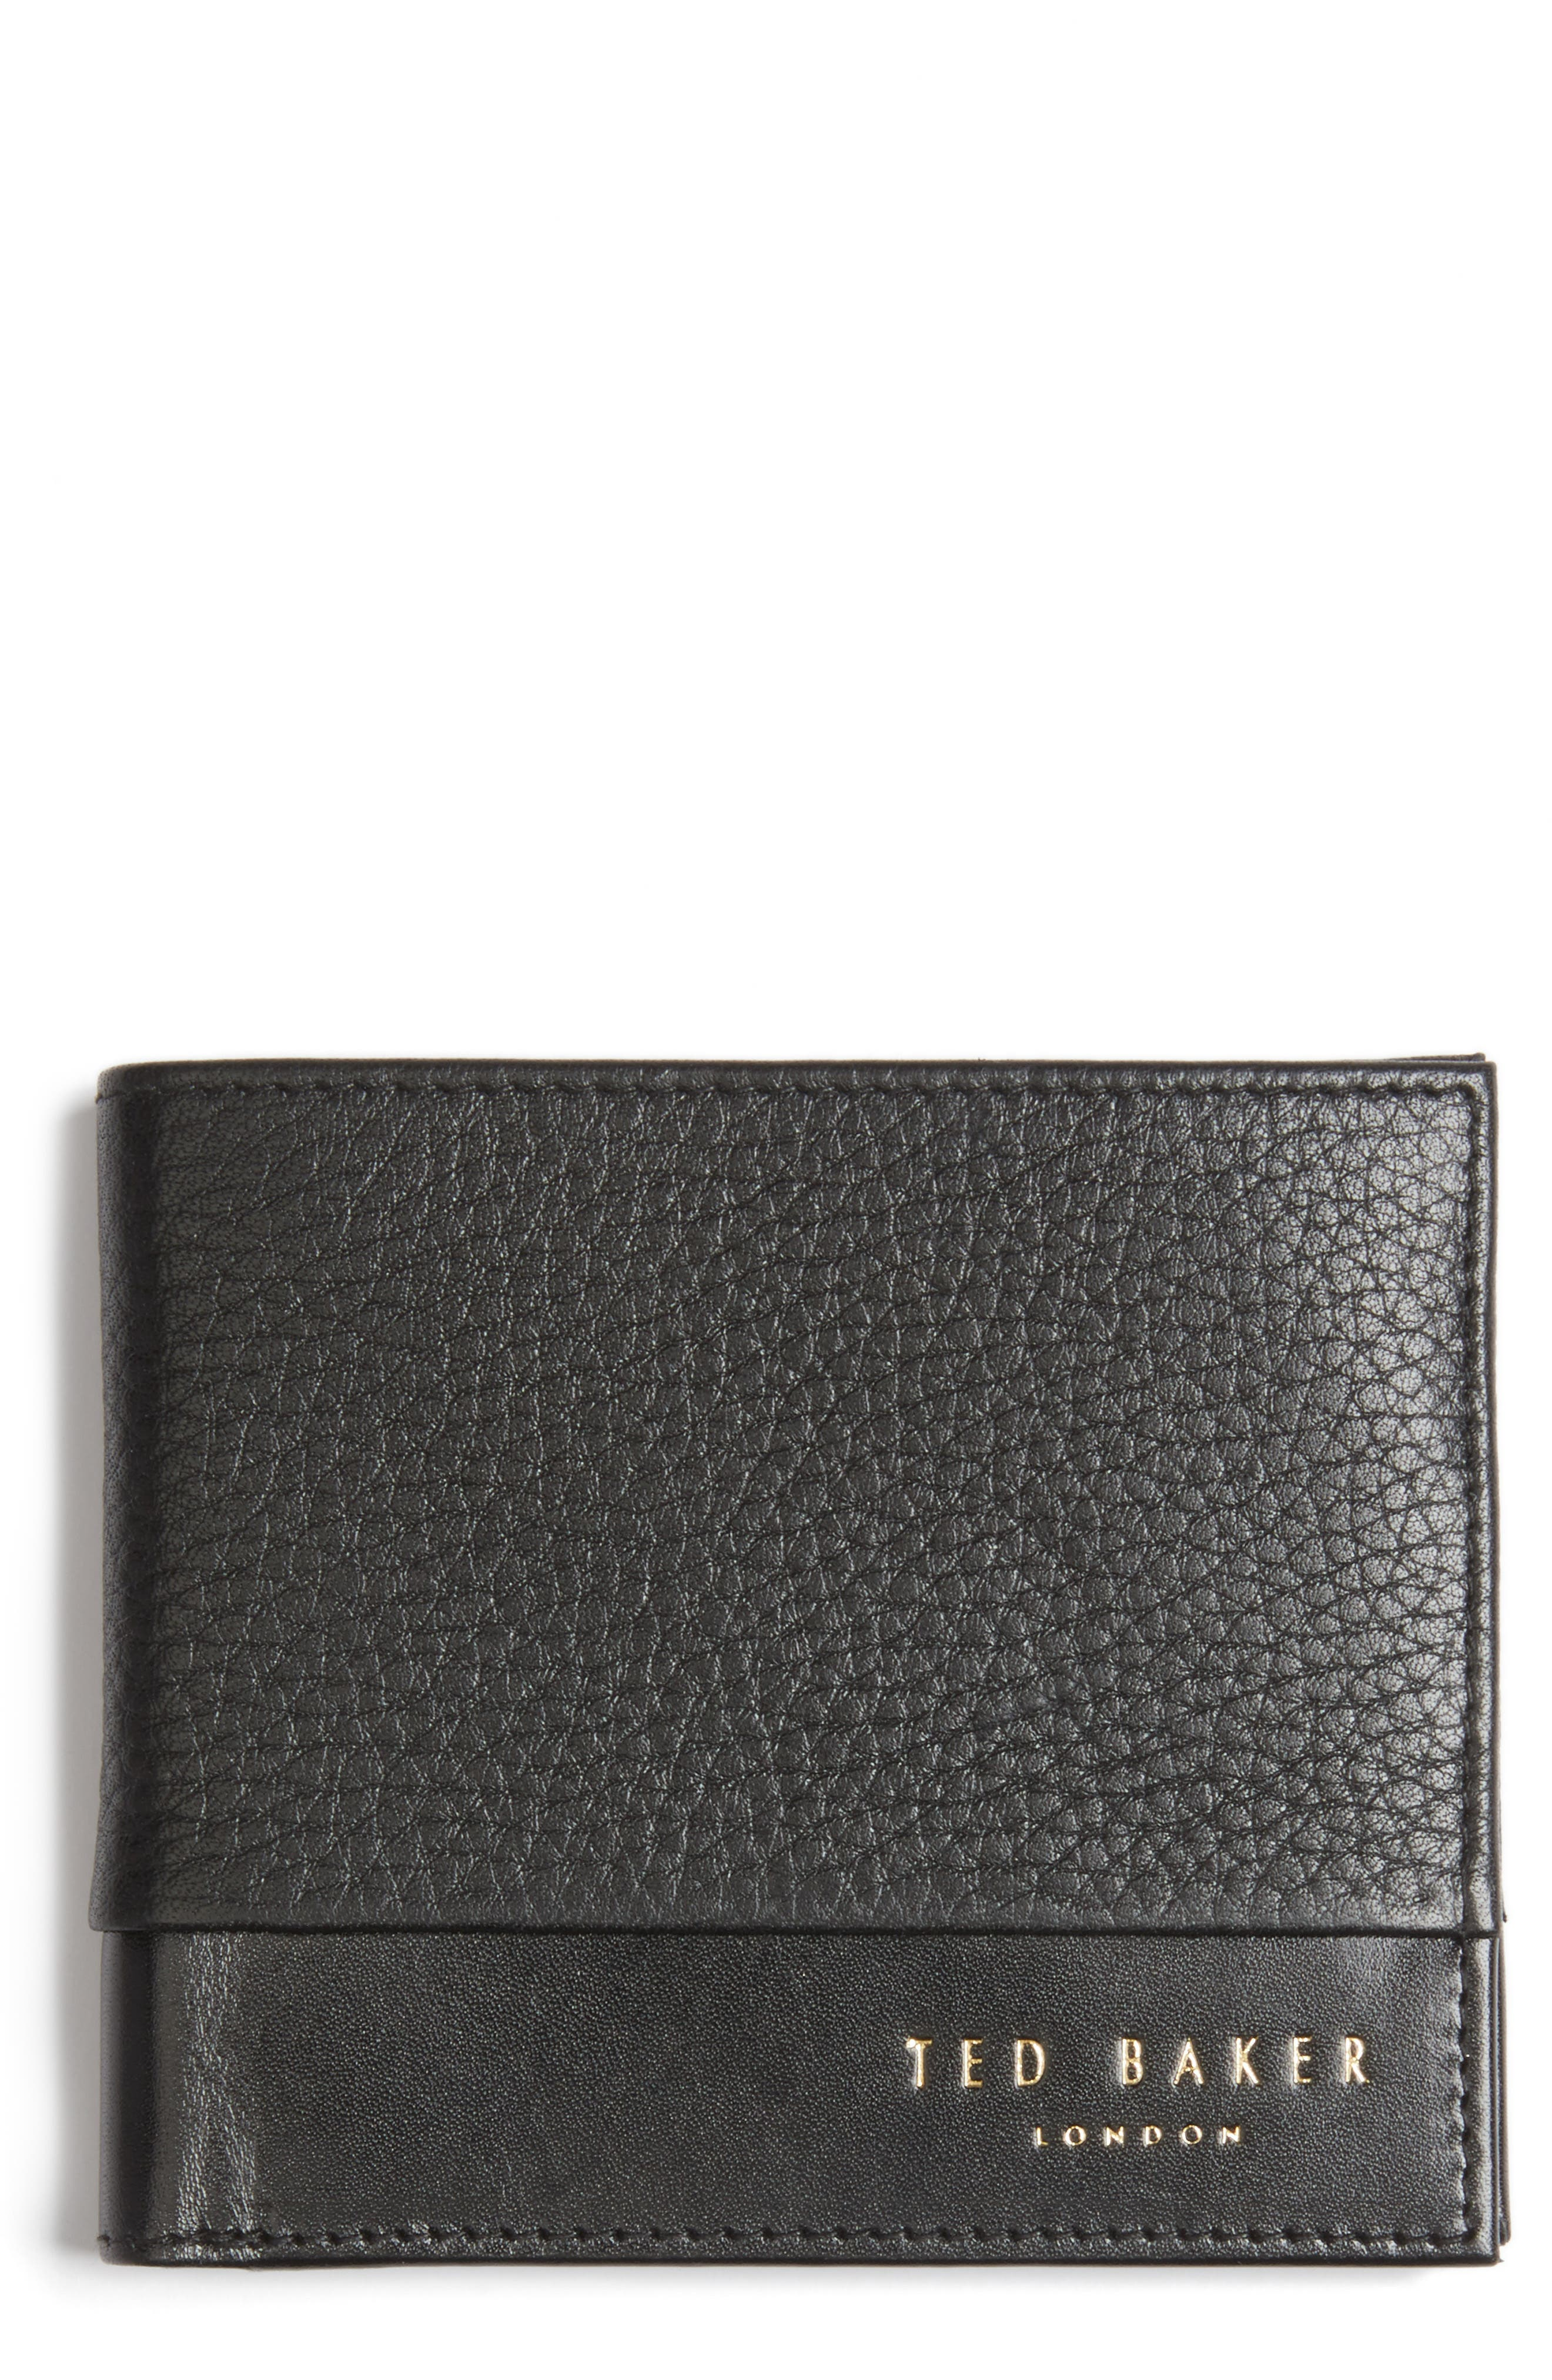 Mixdup Leather Wallet,                             Main thumbnail 1, color,                             001